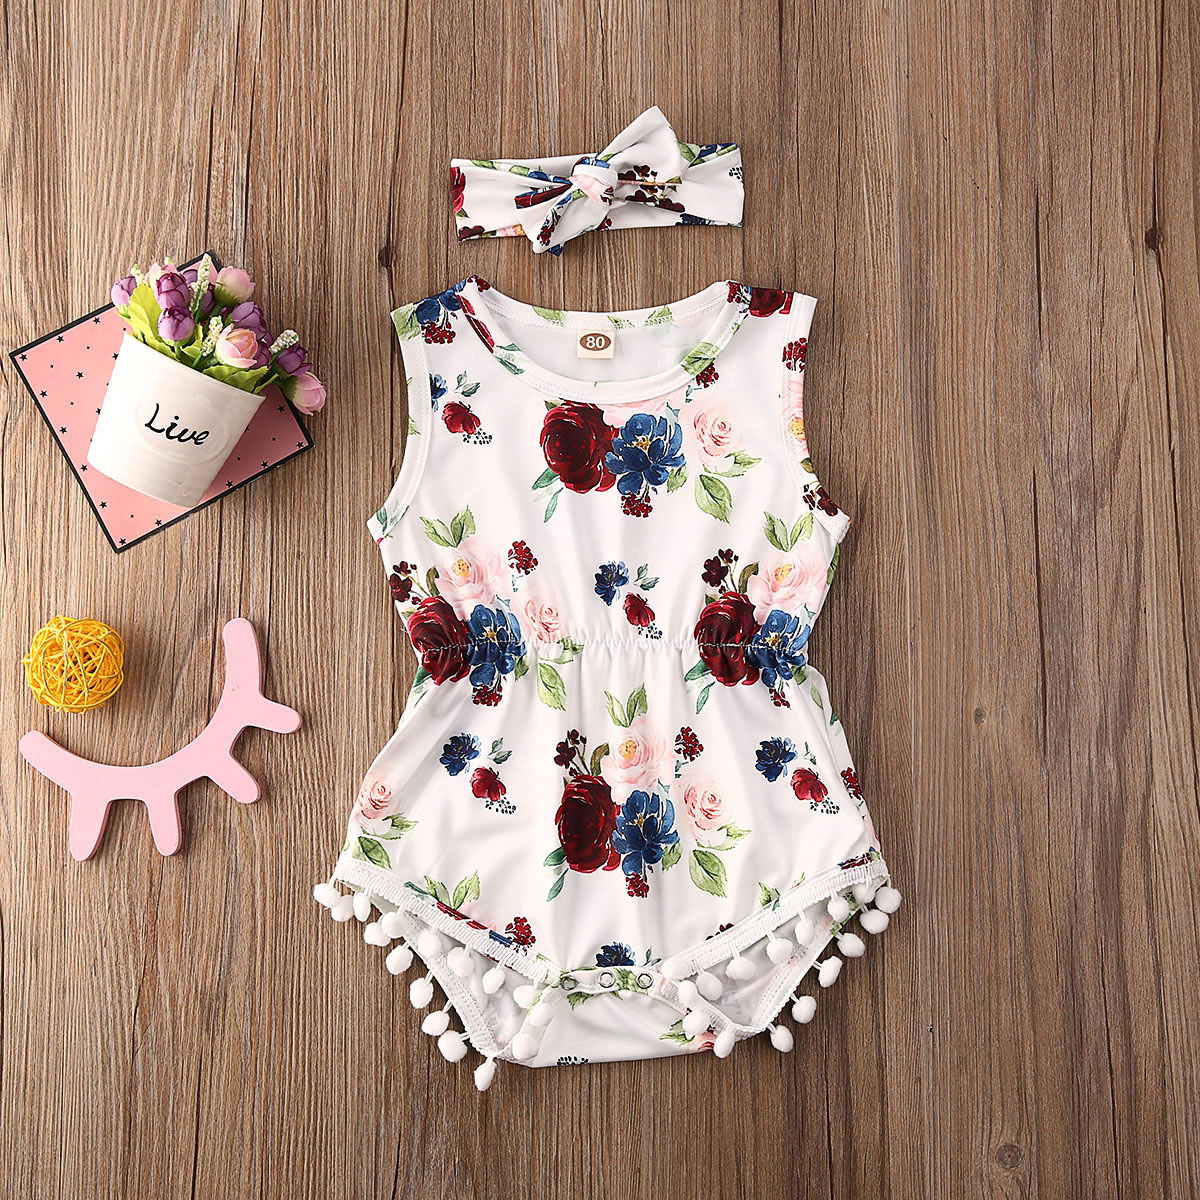 Floral Baby Girls Clothes Romper Hat Flower Casual Clothing Jumpsuit Sunsuit Outfits Set